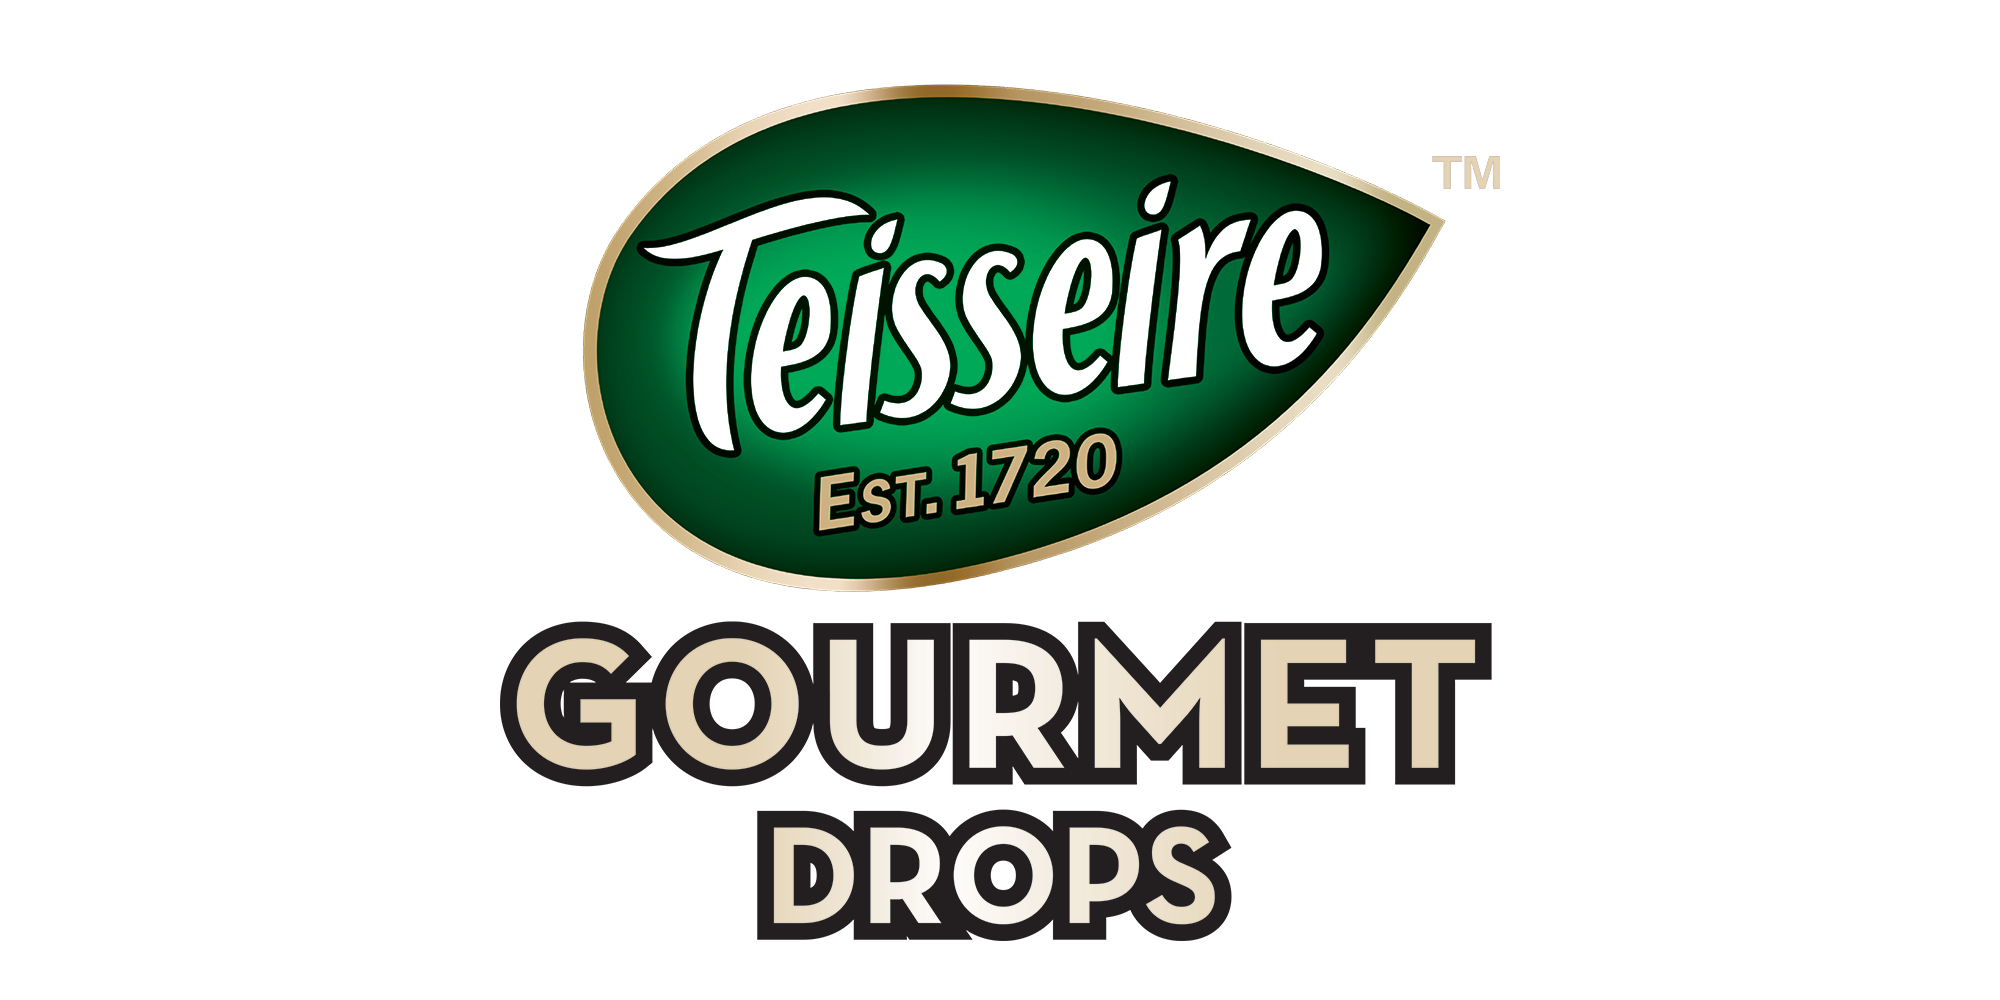 Read Gourmet Drops Reviews